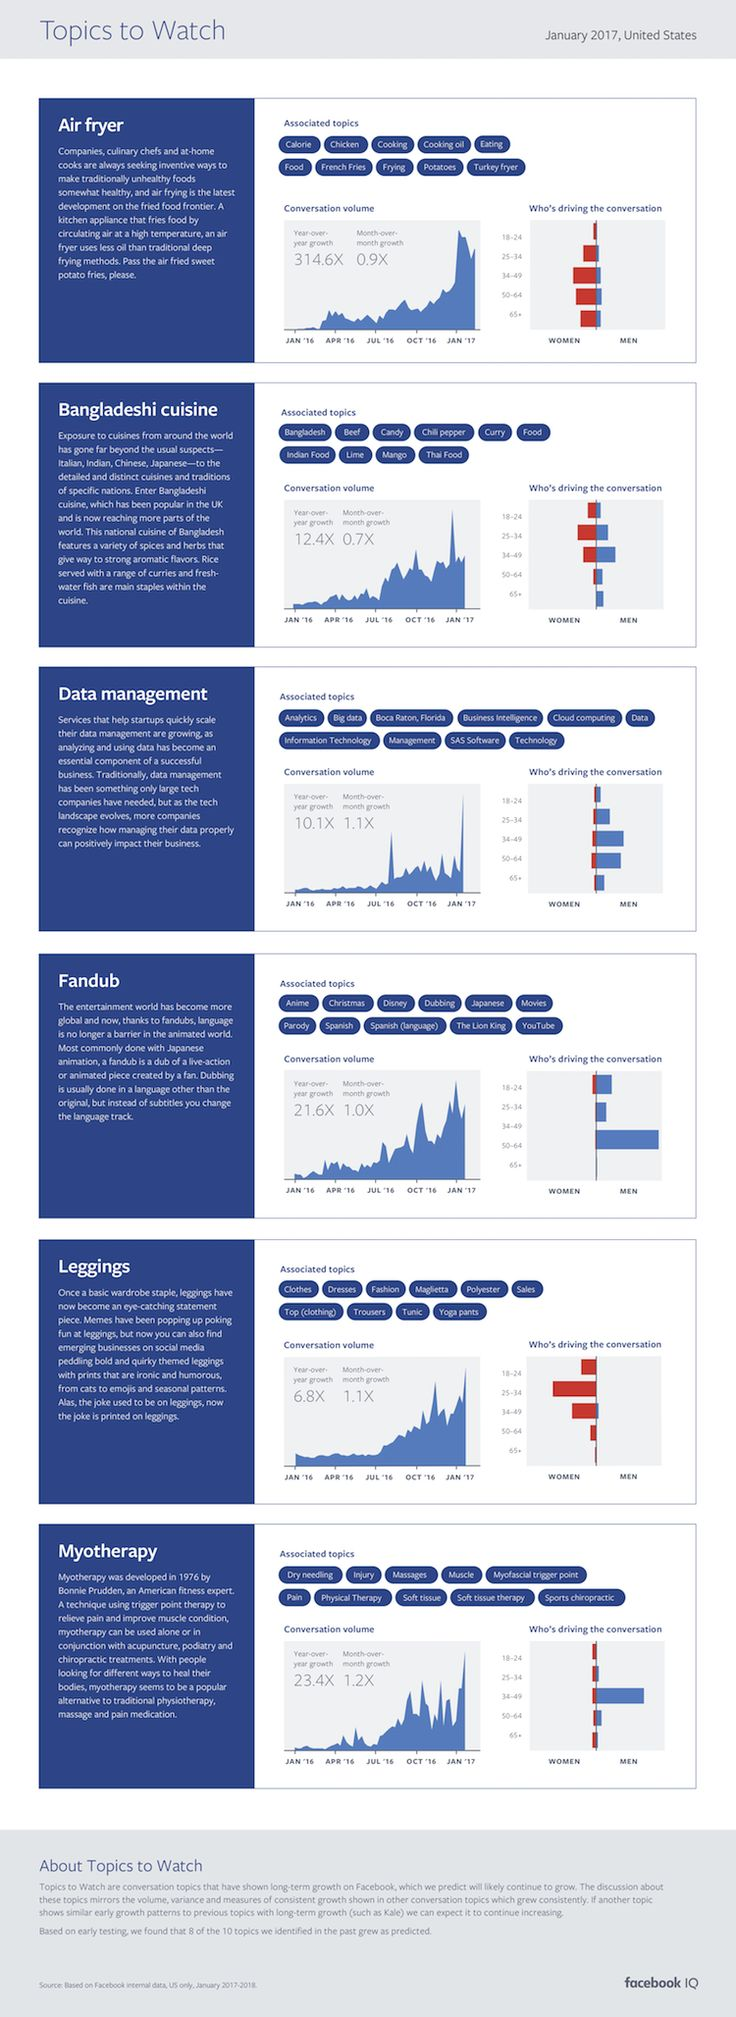 Facebook Highlights Latest Trending Topics from Across the Network [Infographic] | Social Media Today